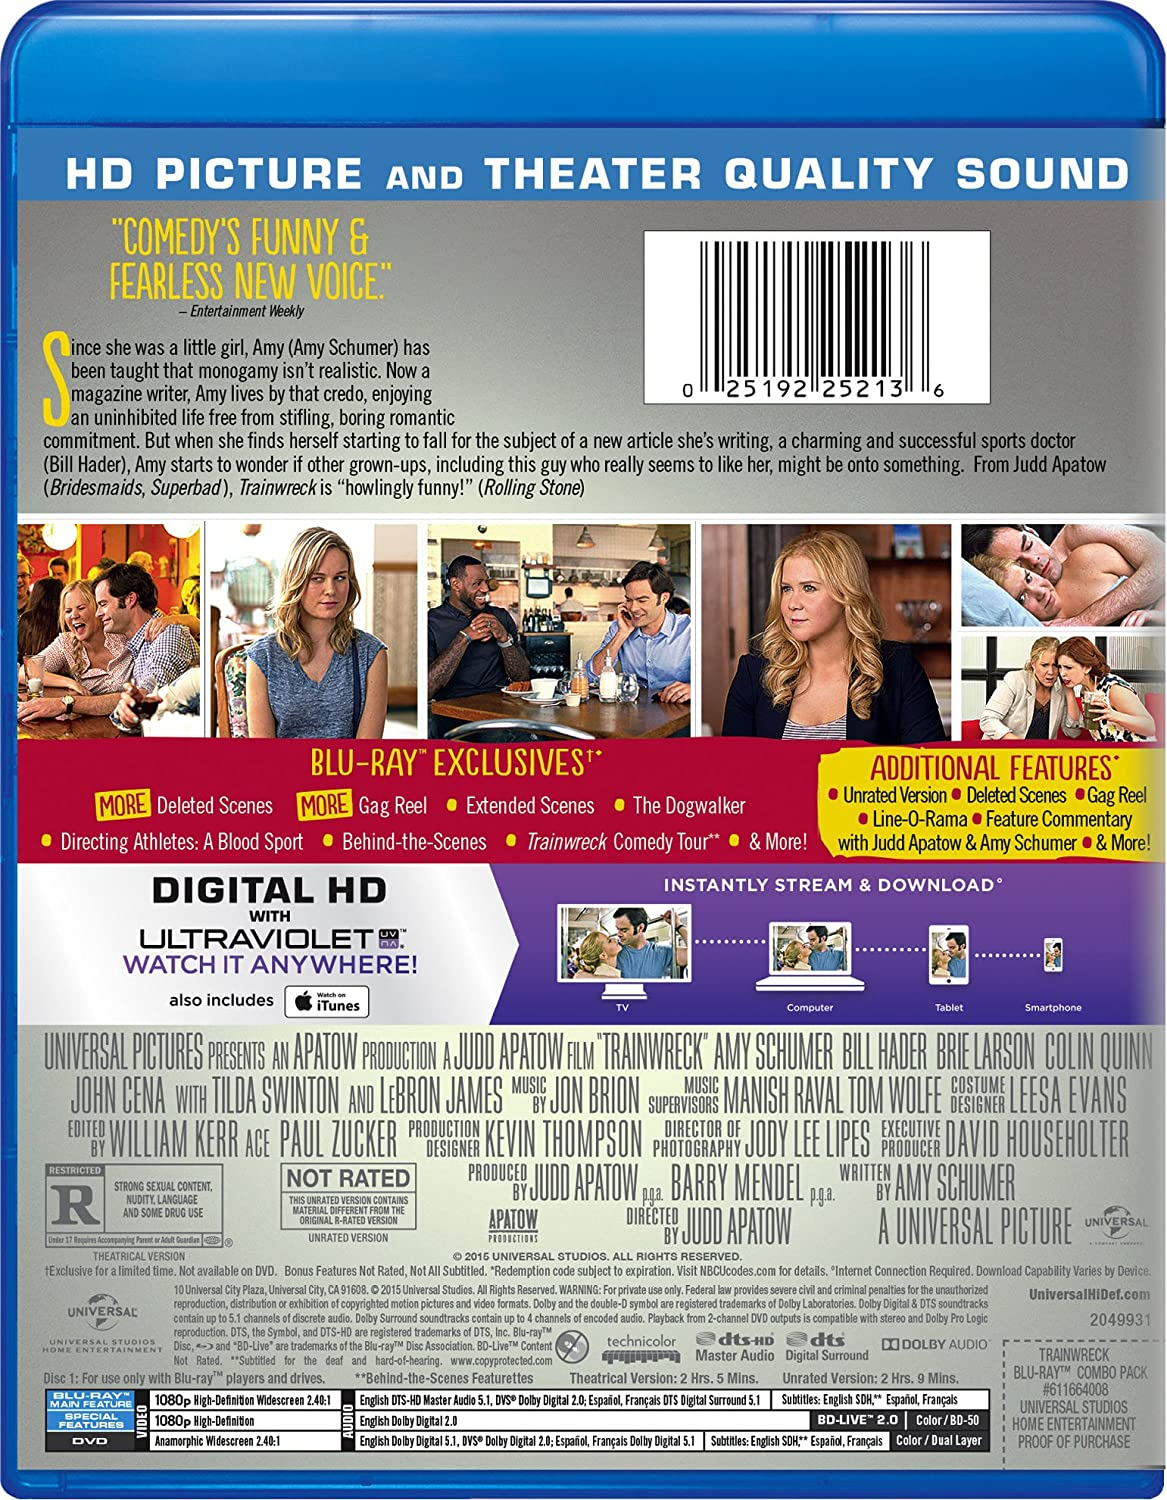 The coloring book review colin quinn - Amazon Com Trainwreck Blu Ray Dvd Digital Hd With Ultraviolet Amy Schumer Bill Hader Brie Larson Colin Quinn John Cena Tilda Swinton